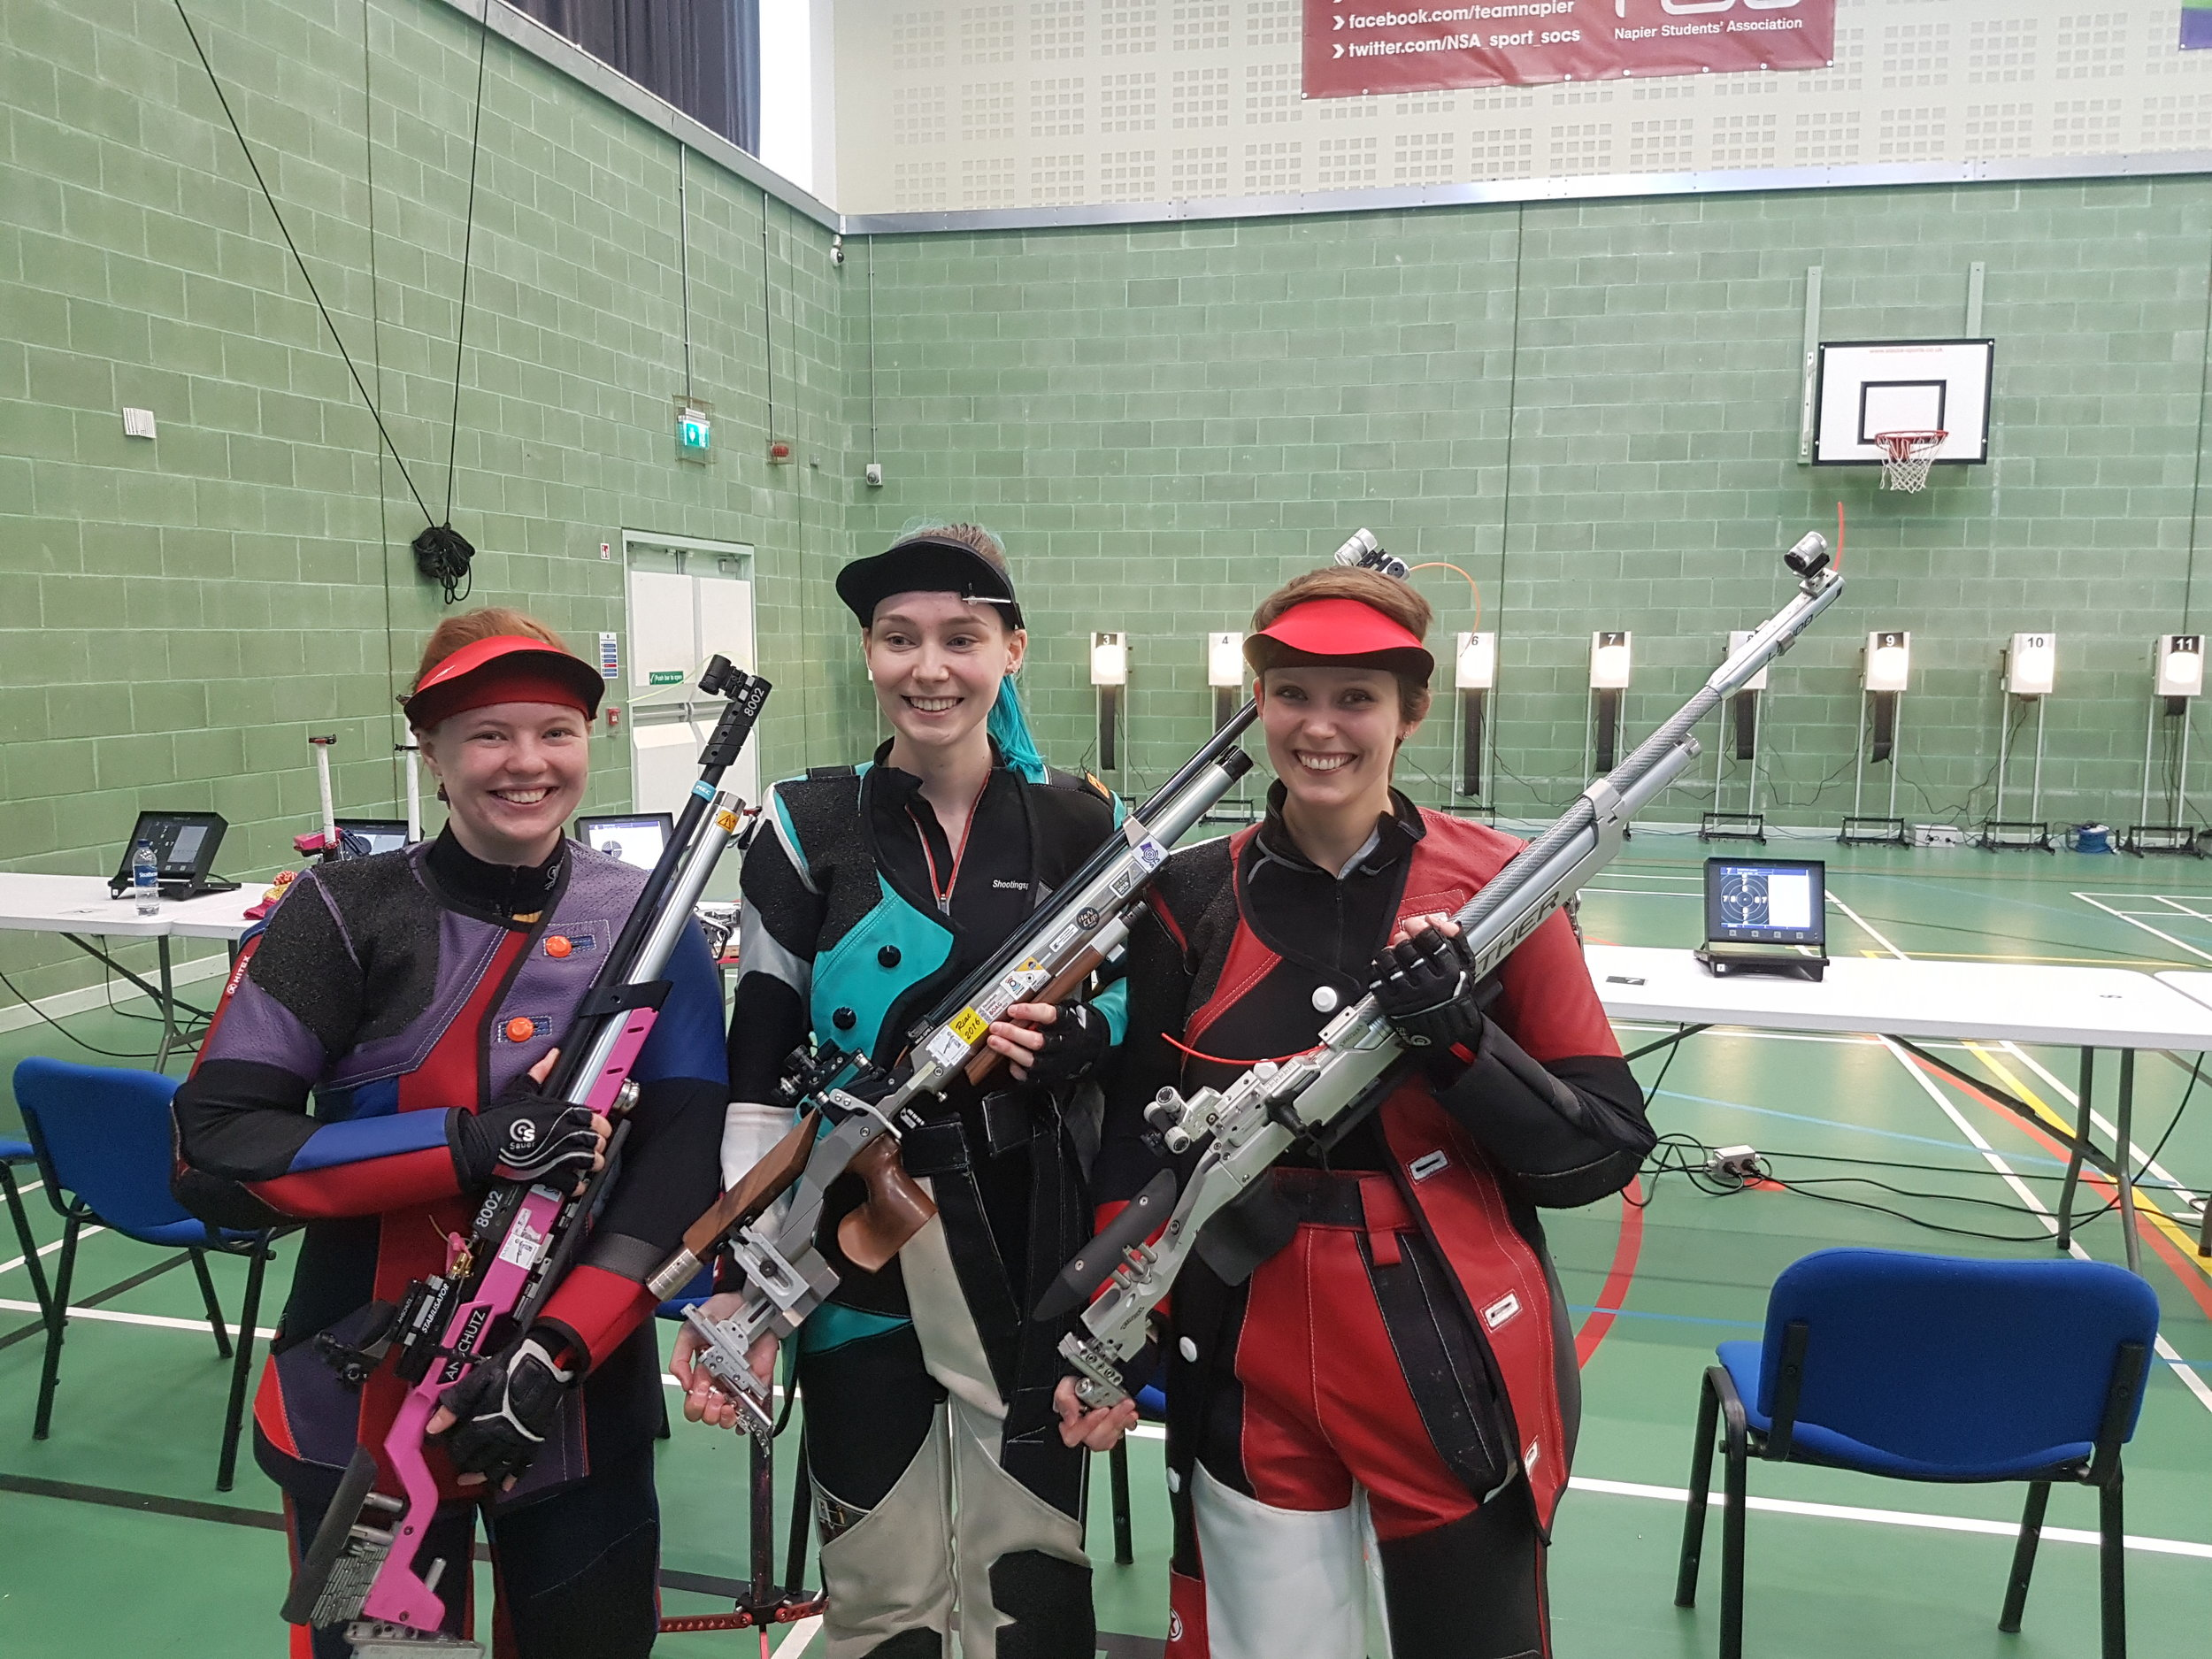 Winners - Women's 10m Air Rifle Championships